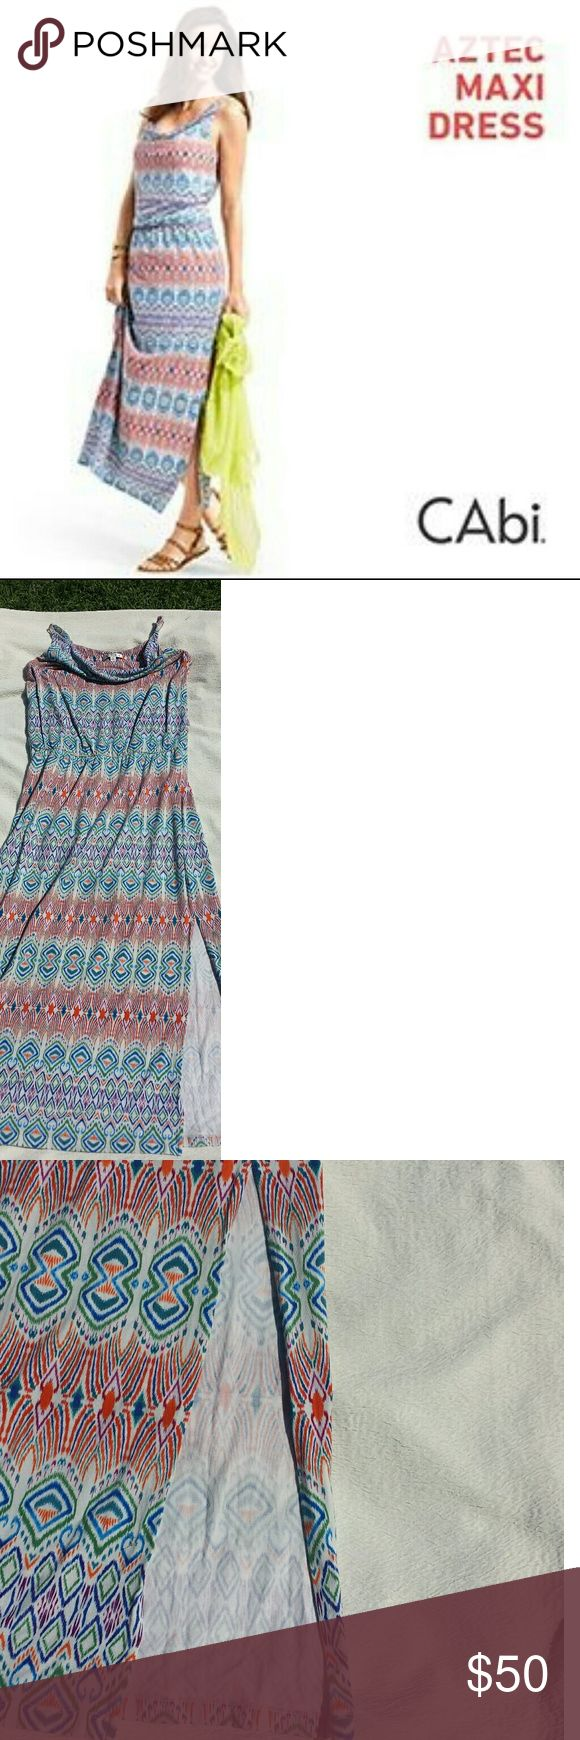 "CAbi Aztec Maxi Dress EUC CAbi Aztec Maxi dress. Very soft fabric with an elastic  waistband, cowl neck line, adjustable straps and a slit on the left side. Layflat measurements  Armpit to Armpit: 21"" Length:  59""  58.5% modal  38% cotton 5.5% spandex Can be machine washed or dry cleaned. Worn twice. CAbi Dresses Maxi"